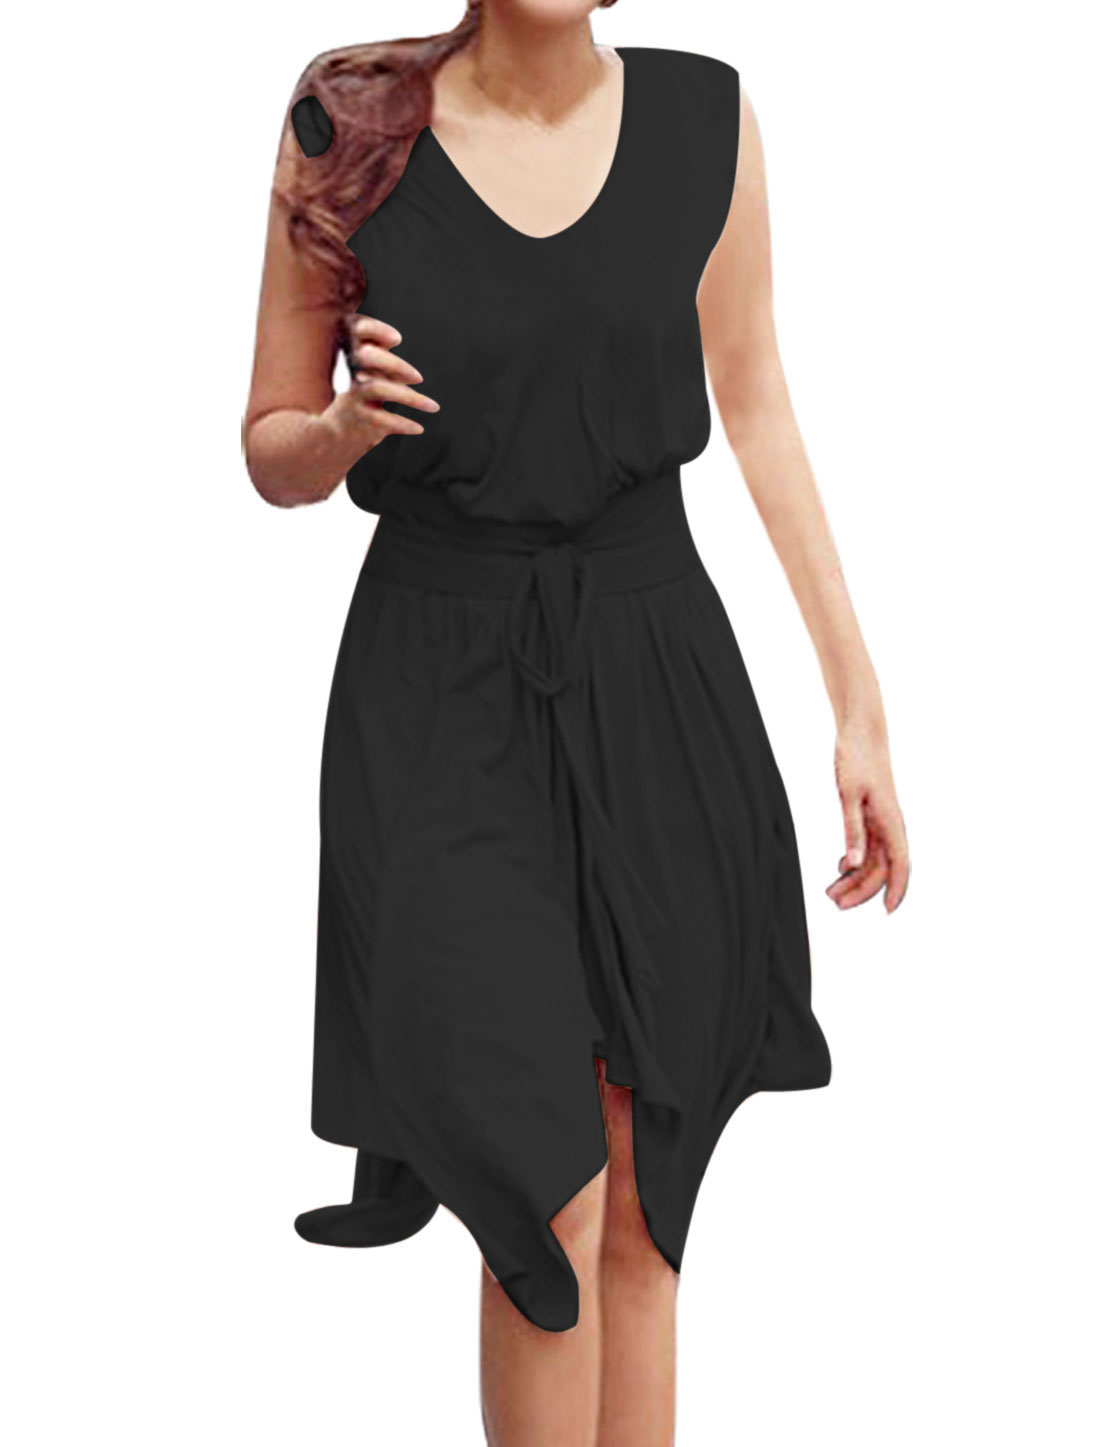 Woman Stylish Black Asymmetric Hem Dress w Detachable Waistband L